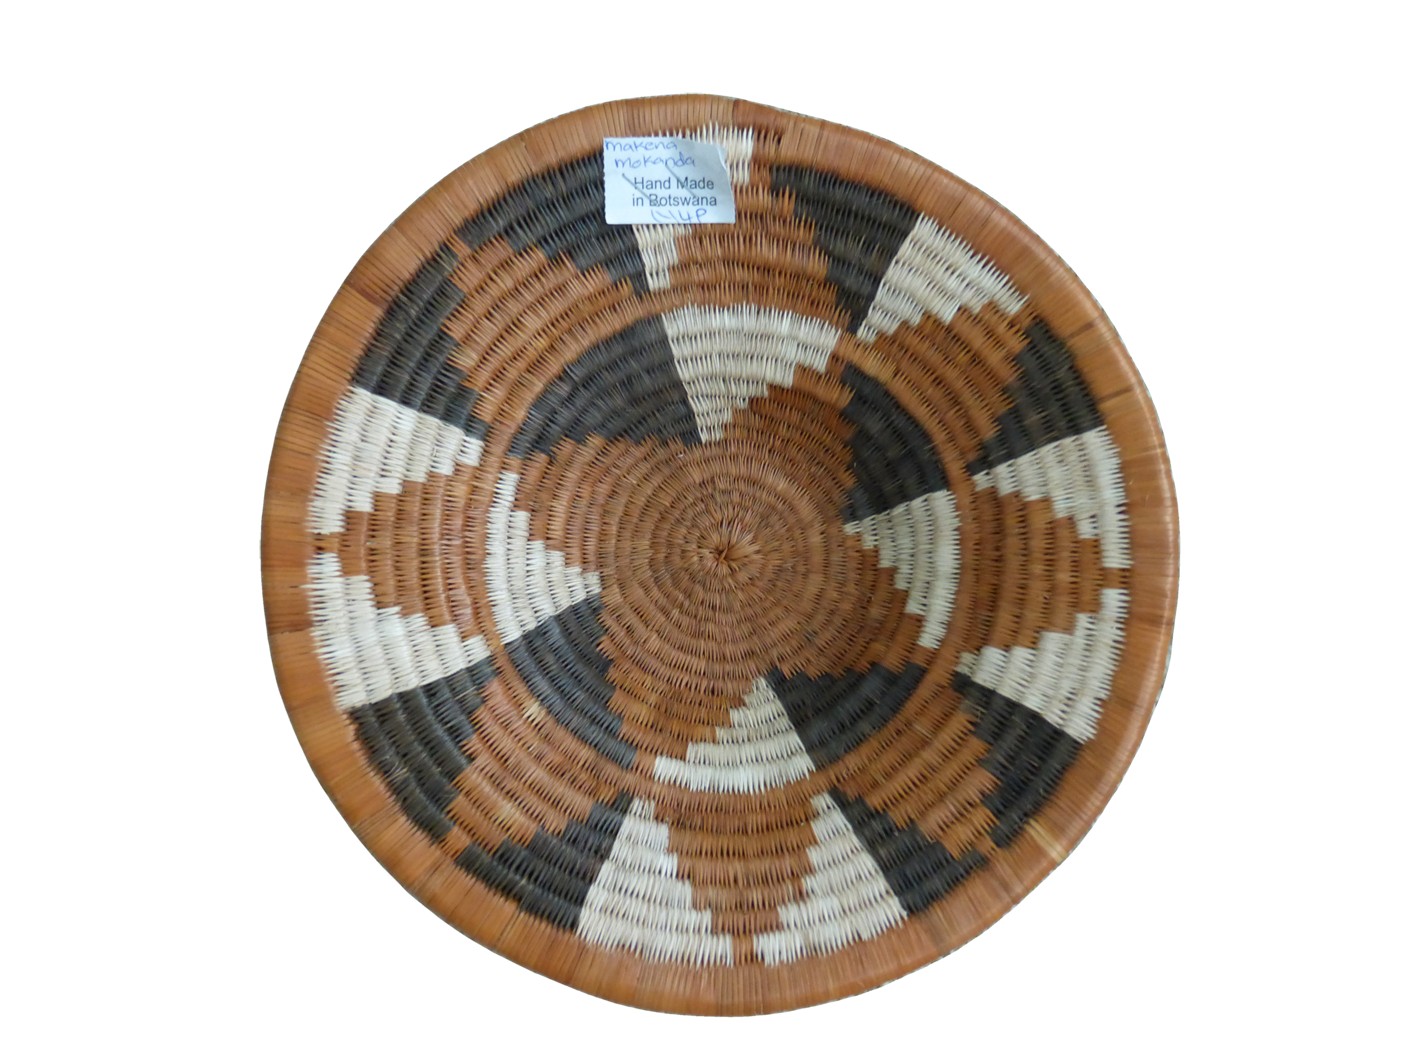 hand woven open basket made in Africa